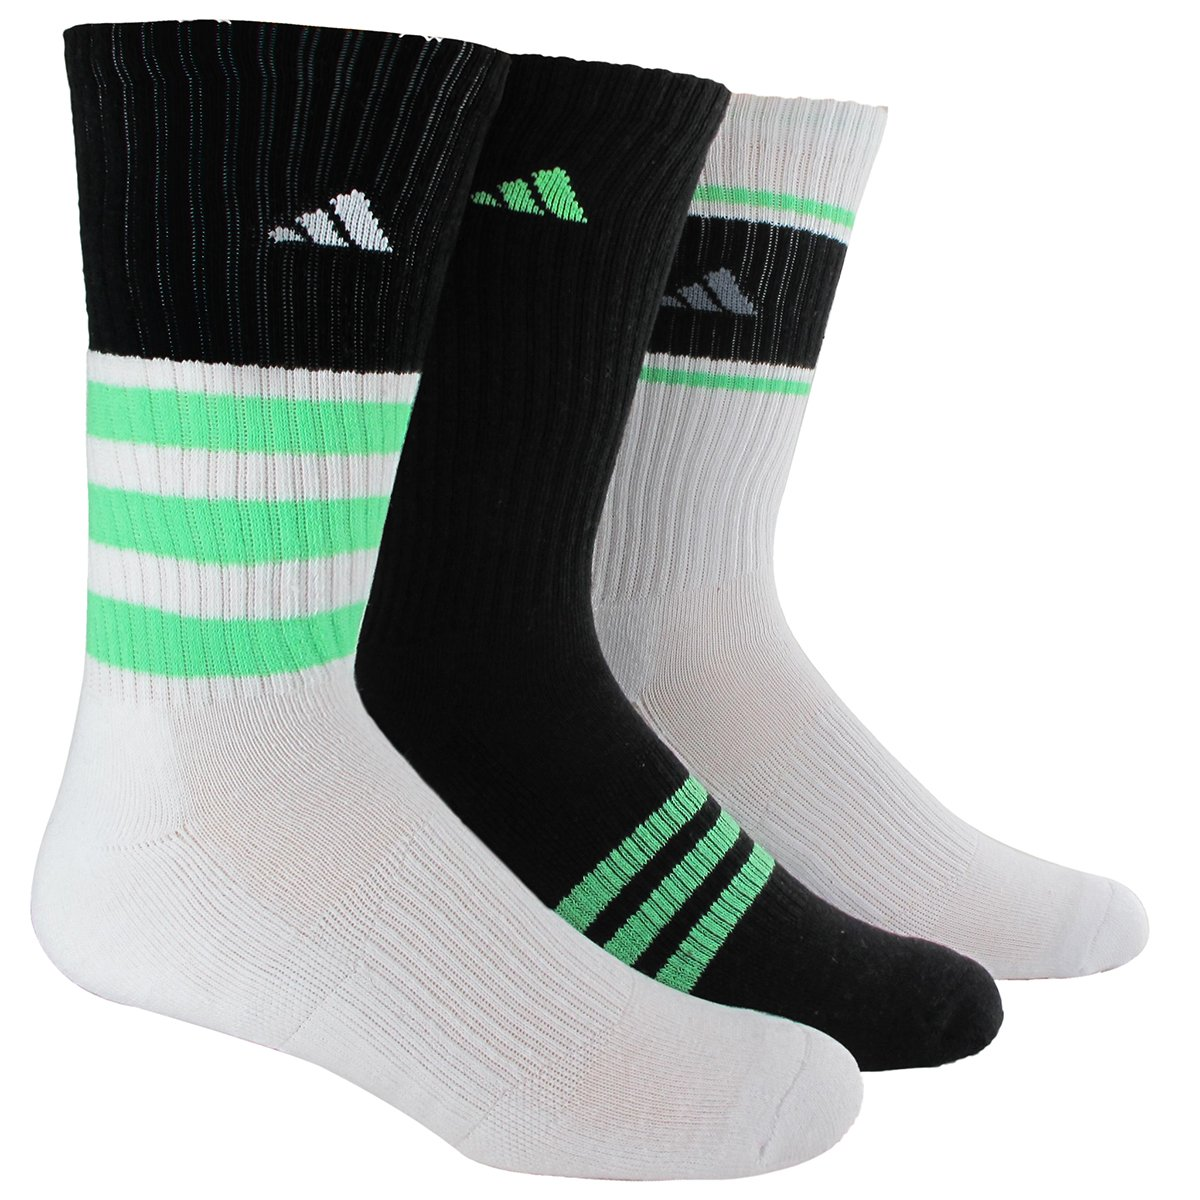 adidas Men's Cushioned Assorted Color 3-Pack Crew Socks, Black/White/Flash Green/Grey/White, Large by adidas